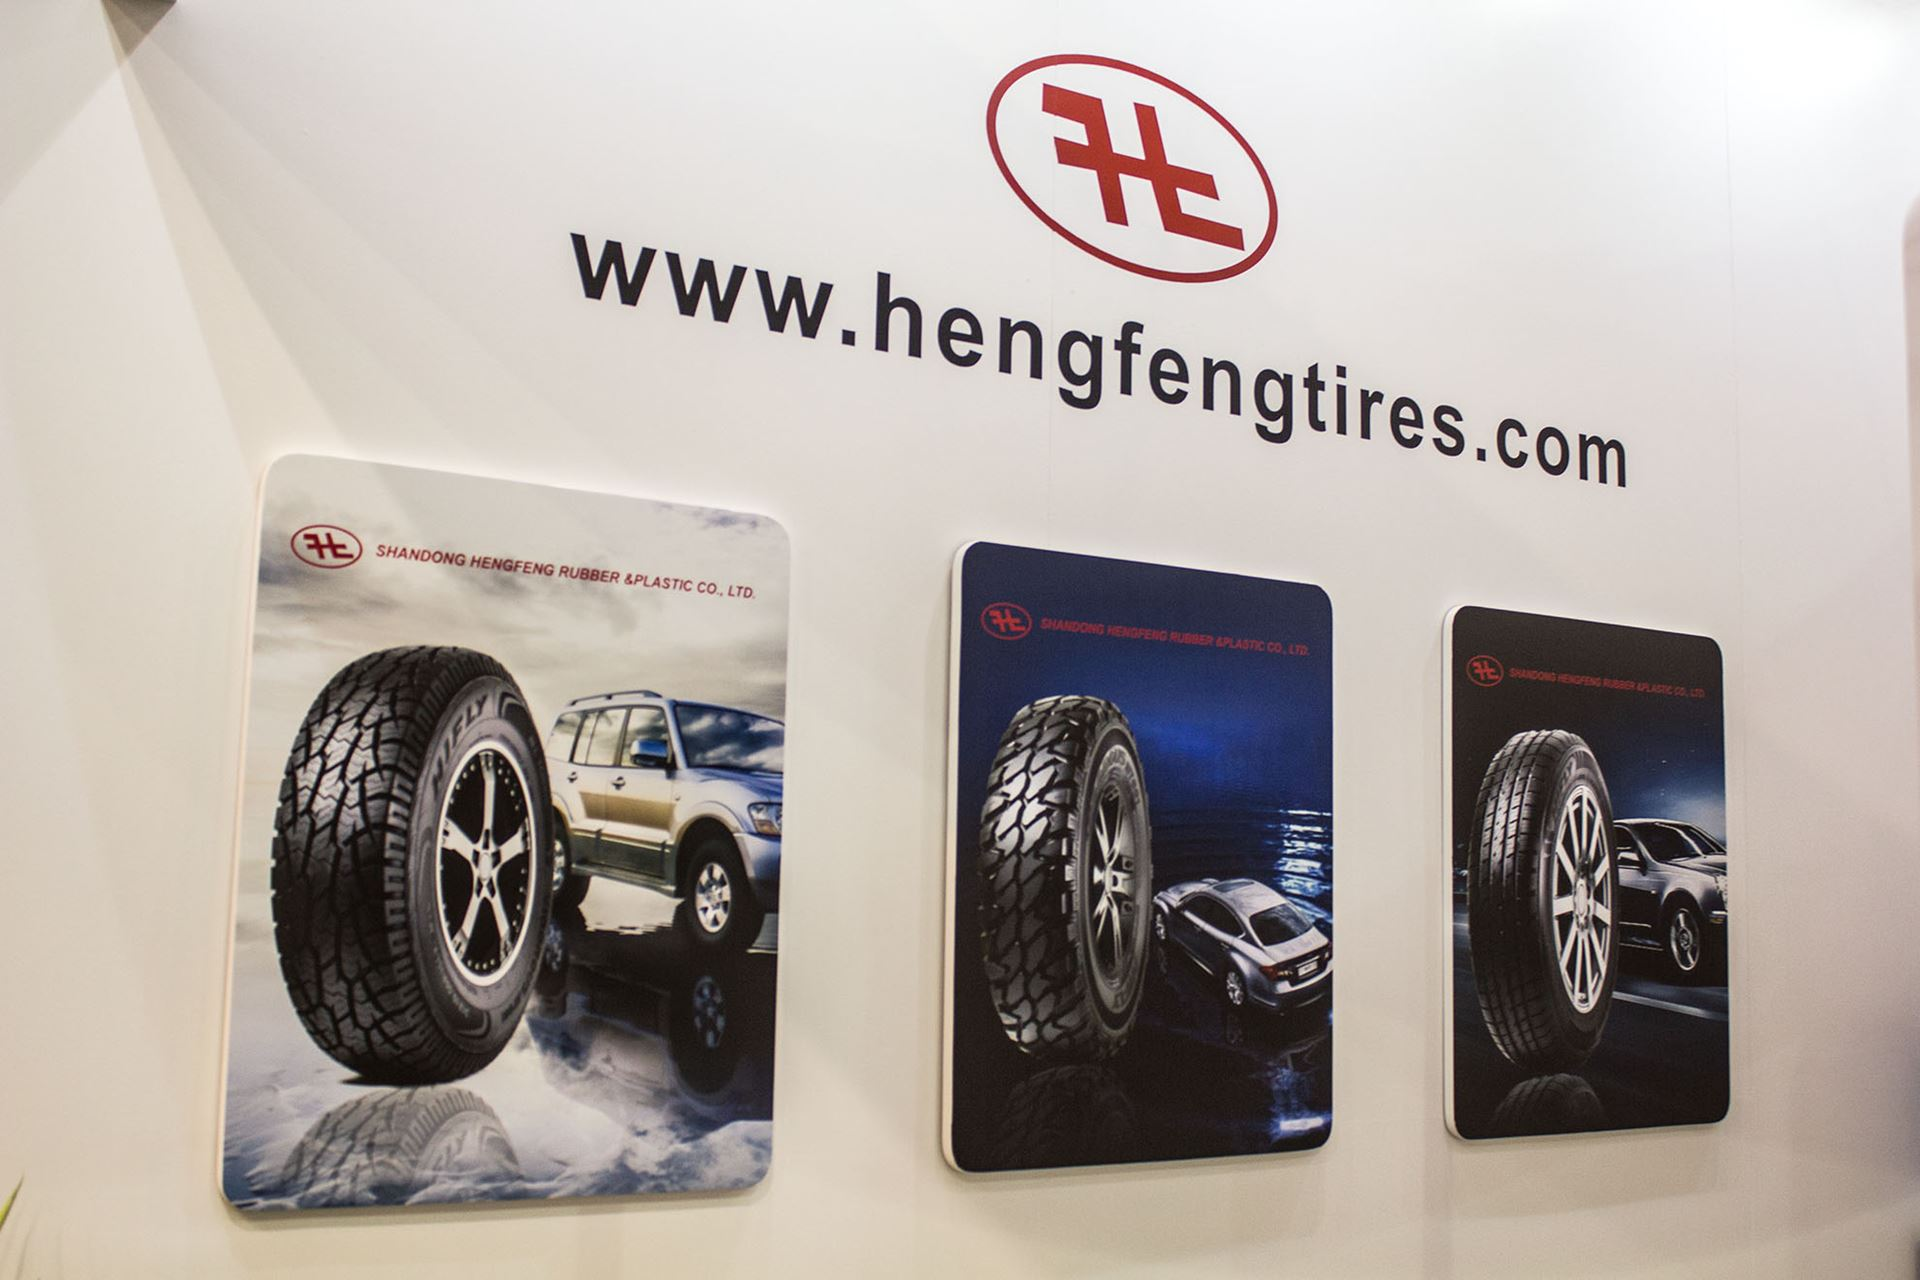 Tyre-Expo-South-Africa-2014-hengfeng-tires-01